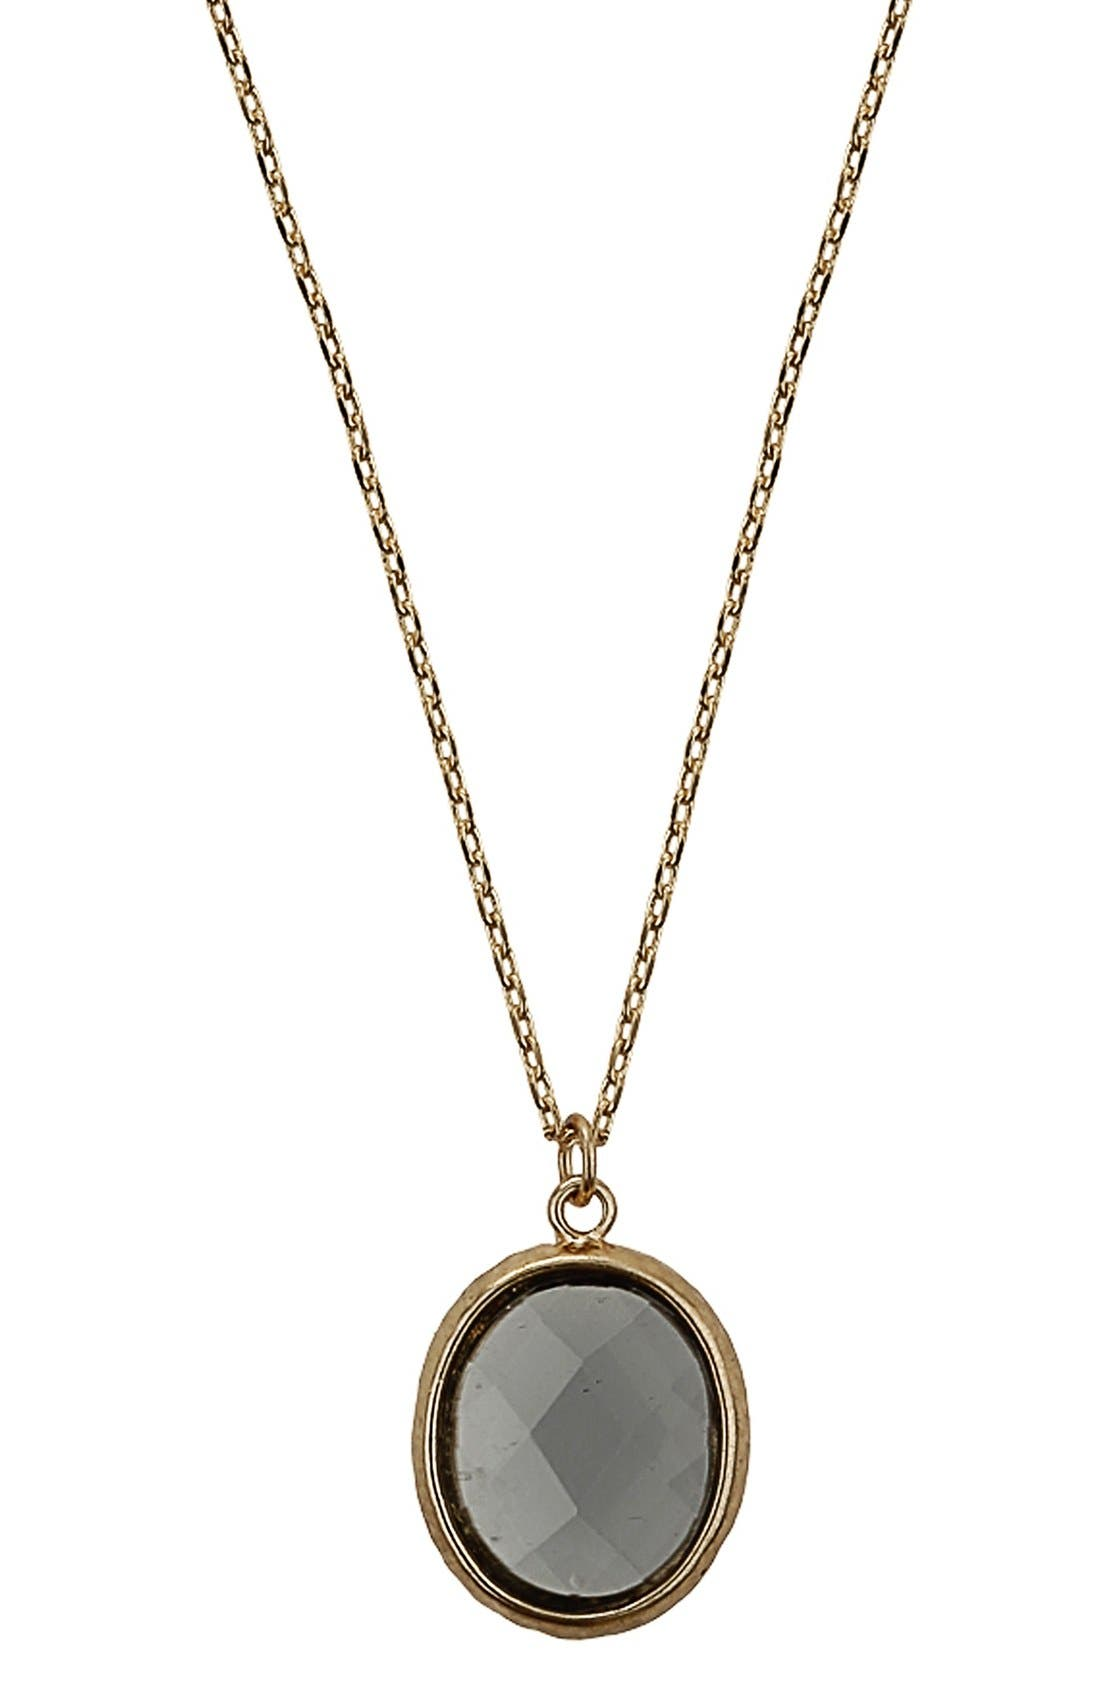 Main Image - Topshop Oval Faceted Stone Necklace